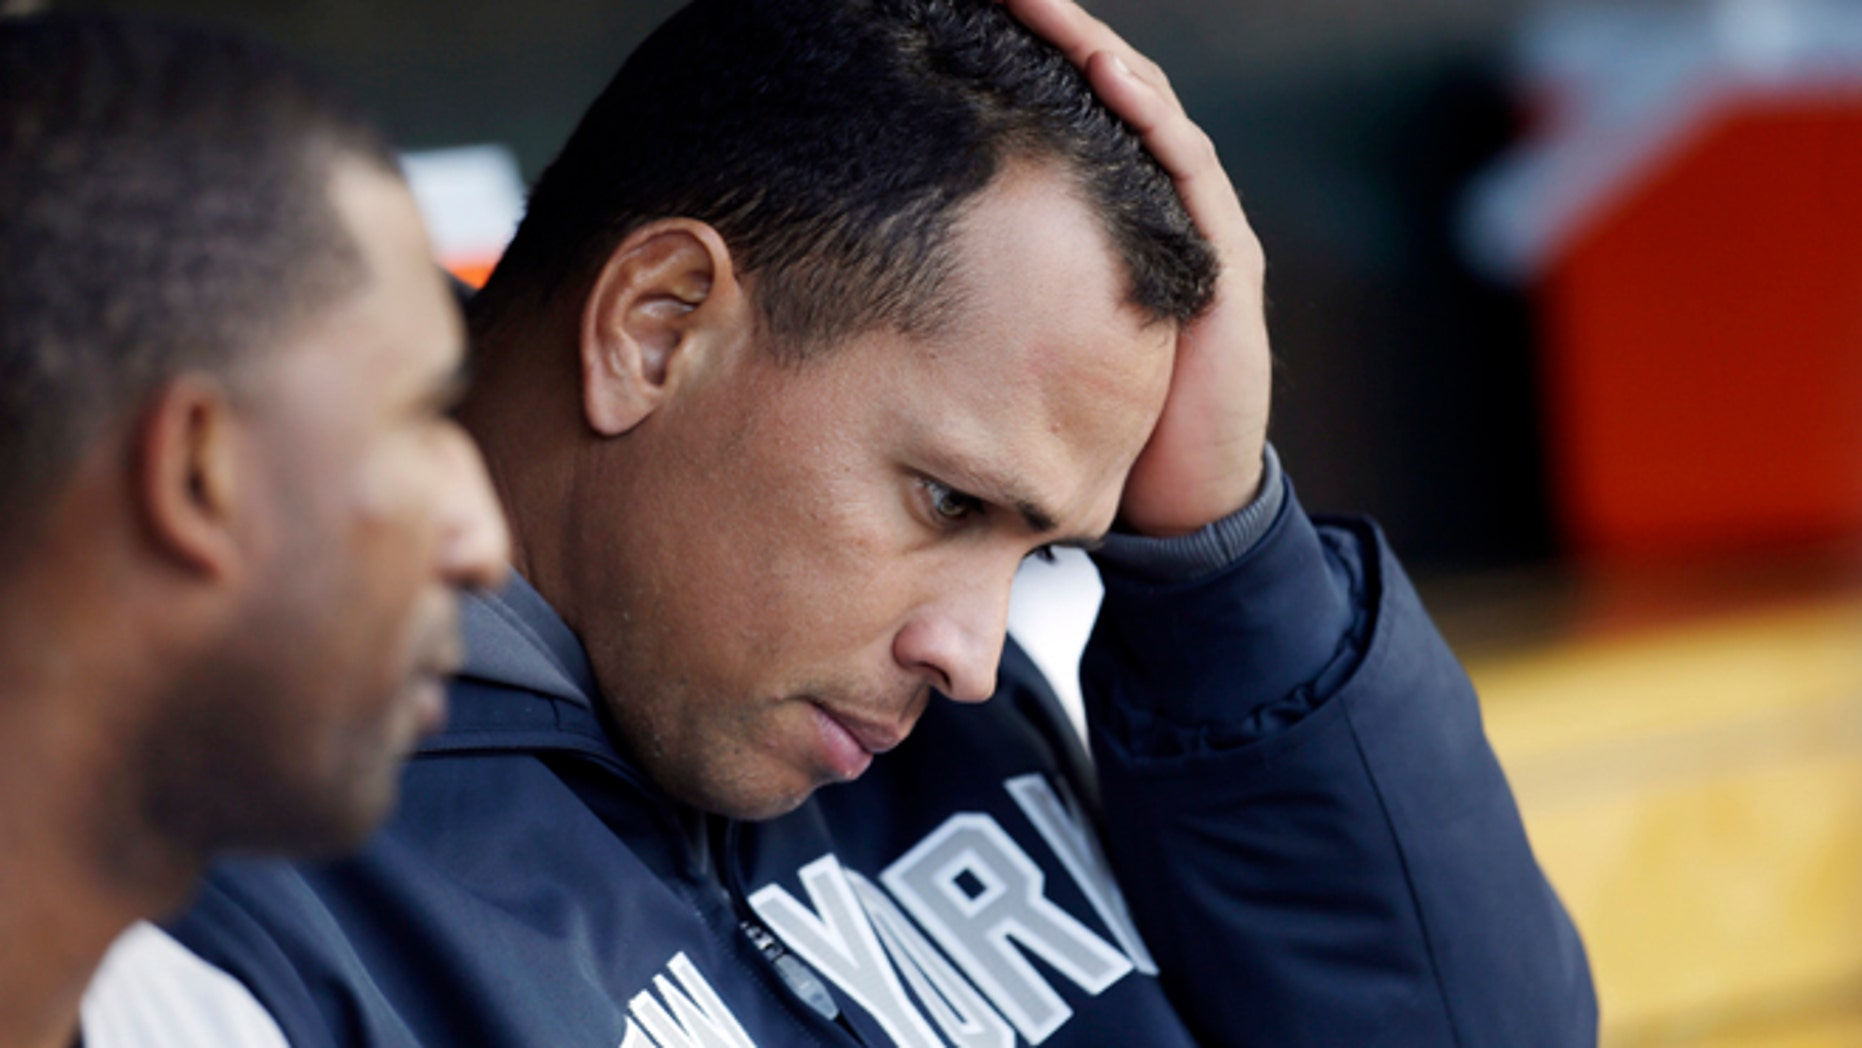 New York Yankees' Alex Rodriguez watches from the bench during Game 4 of the American League championship series against the Detroit Tigers Thursday, Oct. 18, 2012, in Detroit. (AP Photo/Paul Sancya )